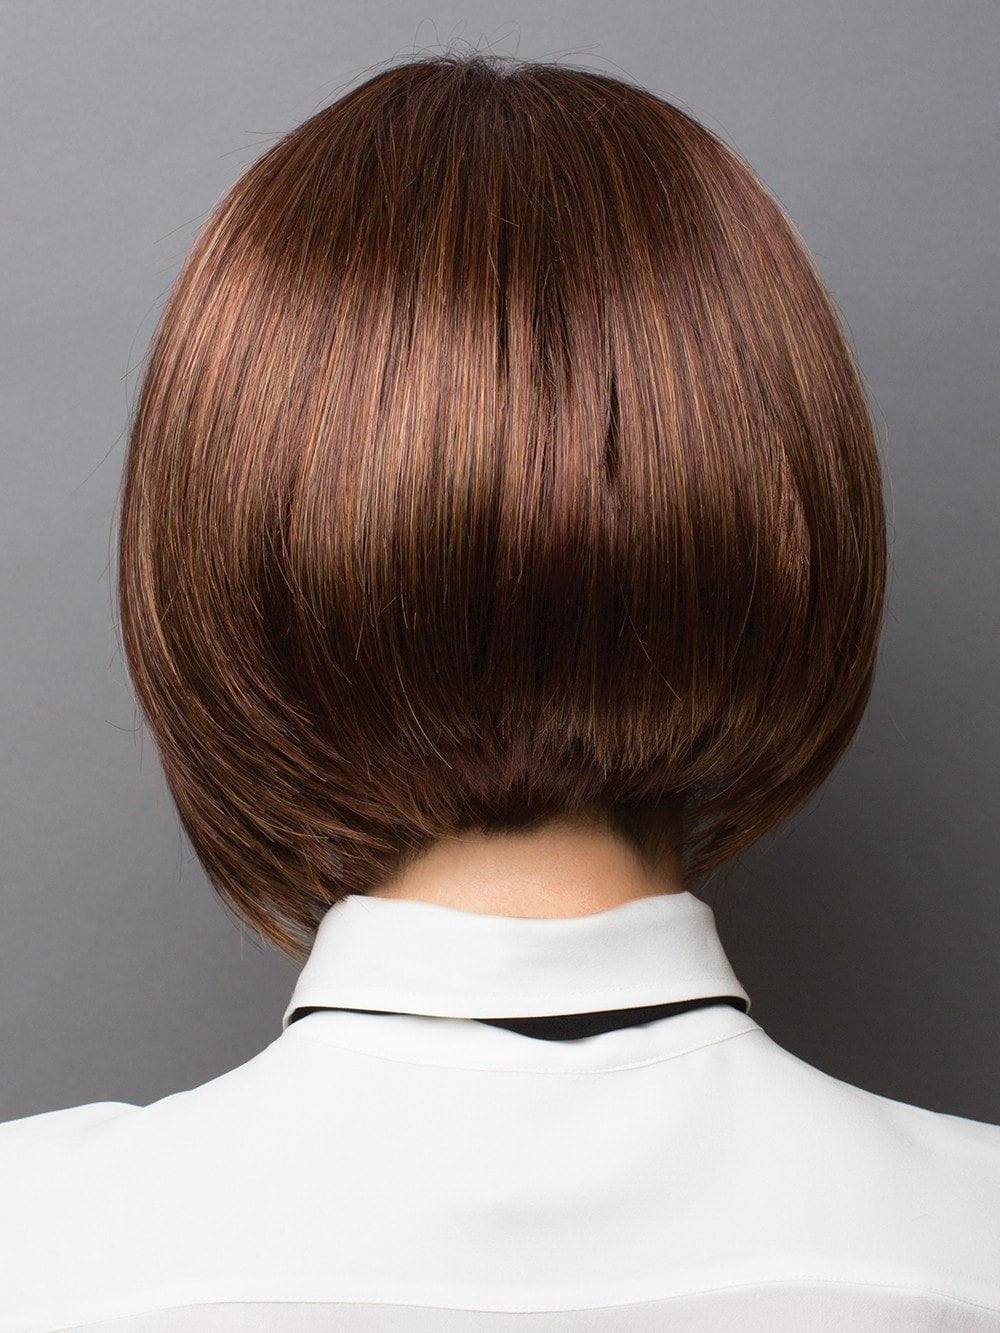 Modern bob with great thickness in fringe